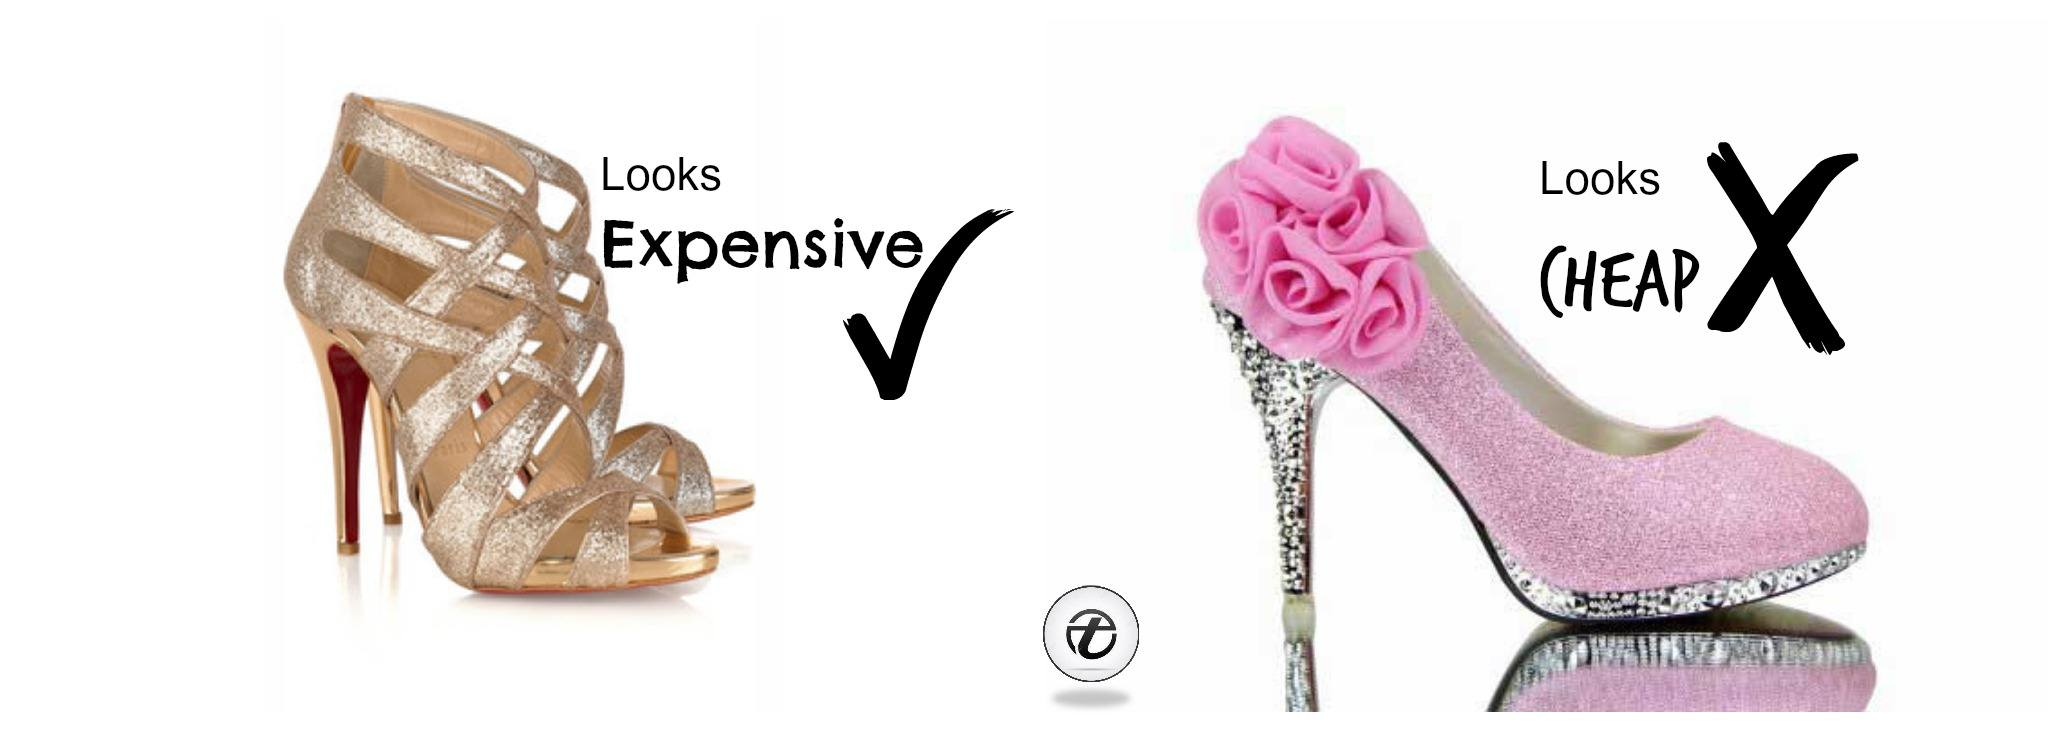 how-to-make-outfit-look-expensive How to Make your Outfits look Expensive - 13 Pro Tips